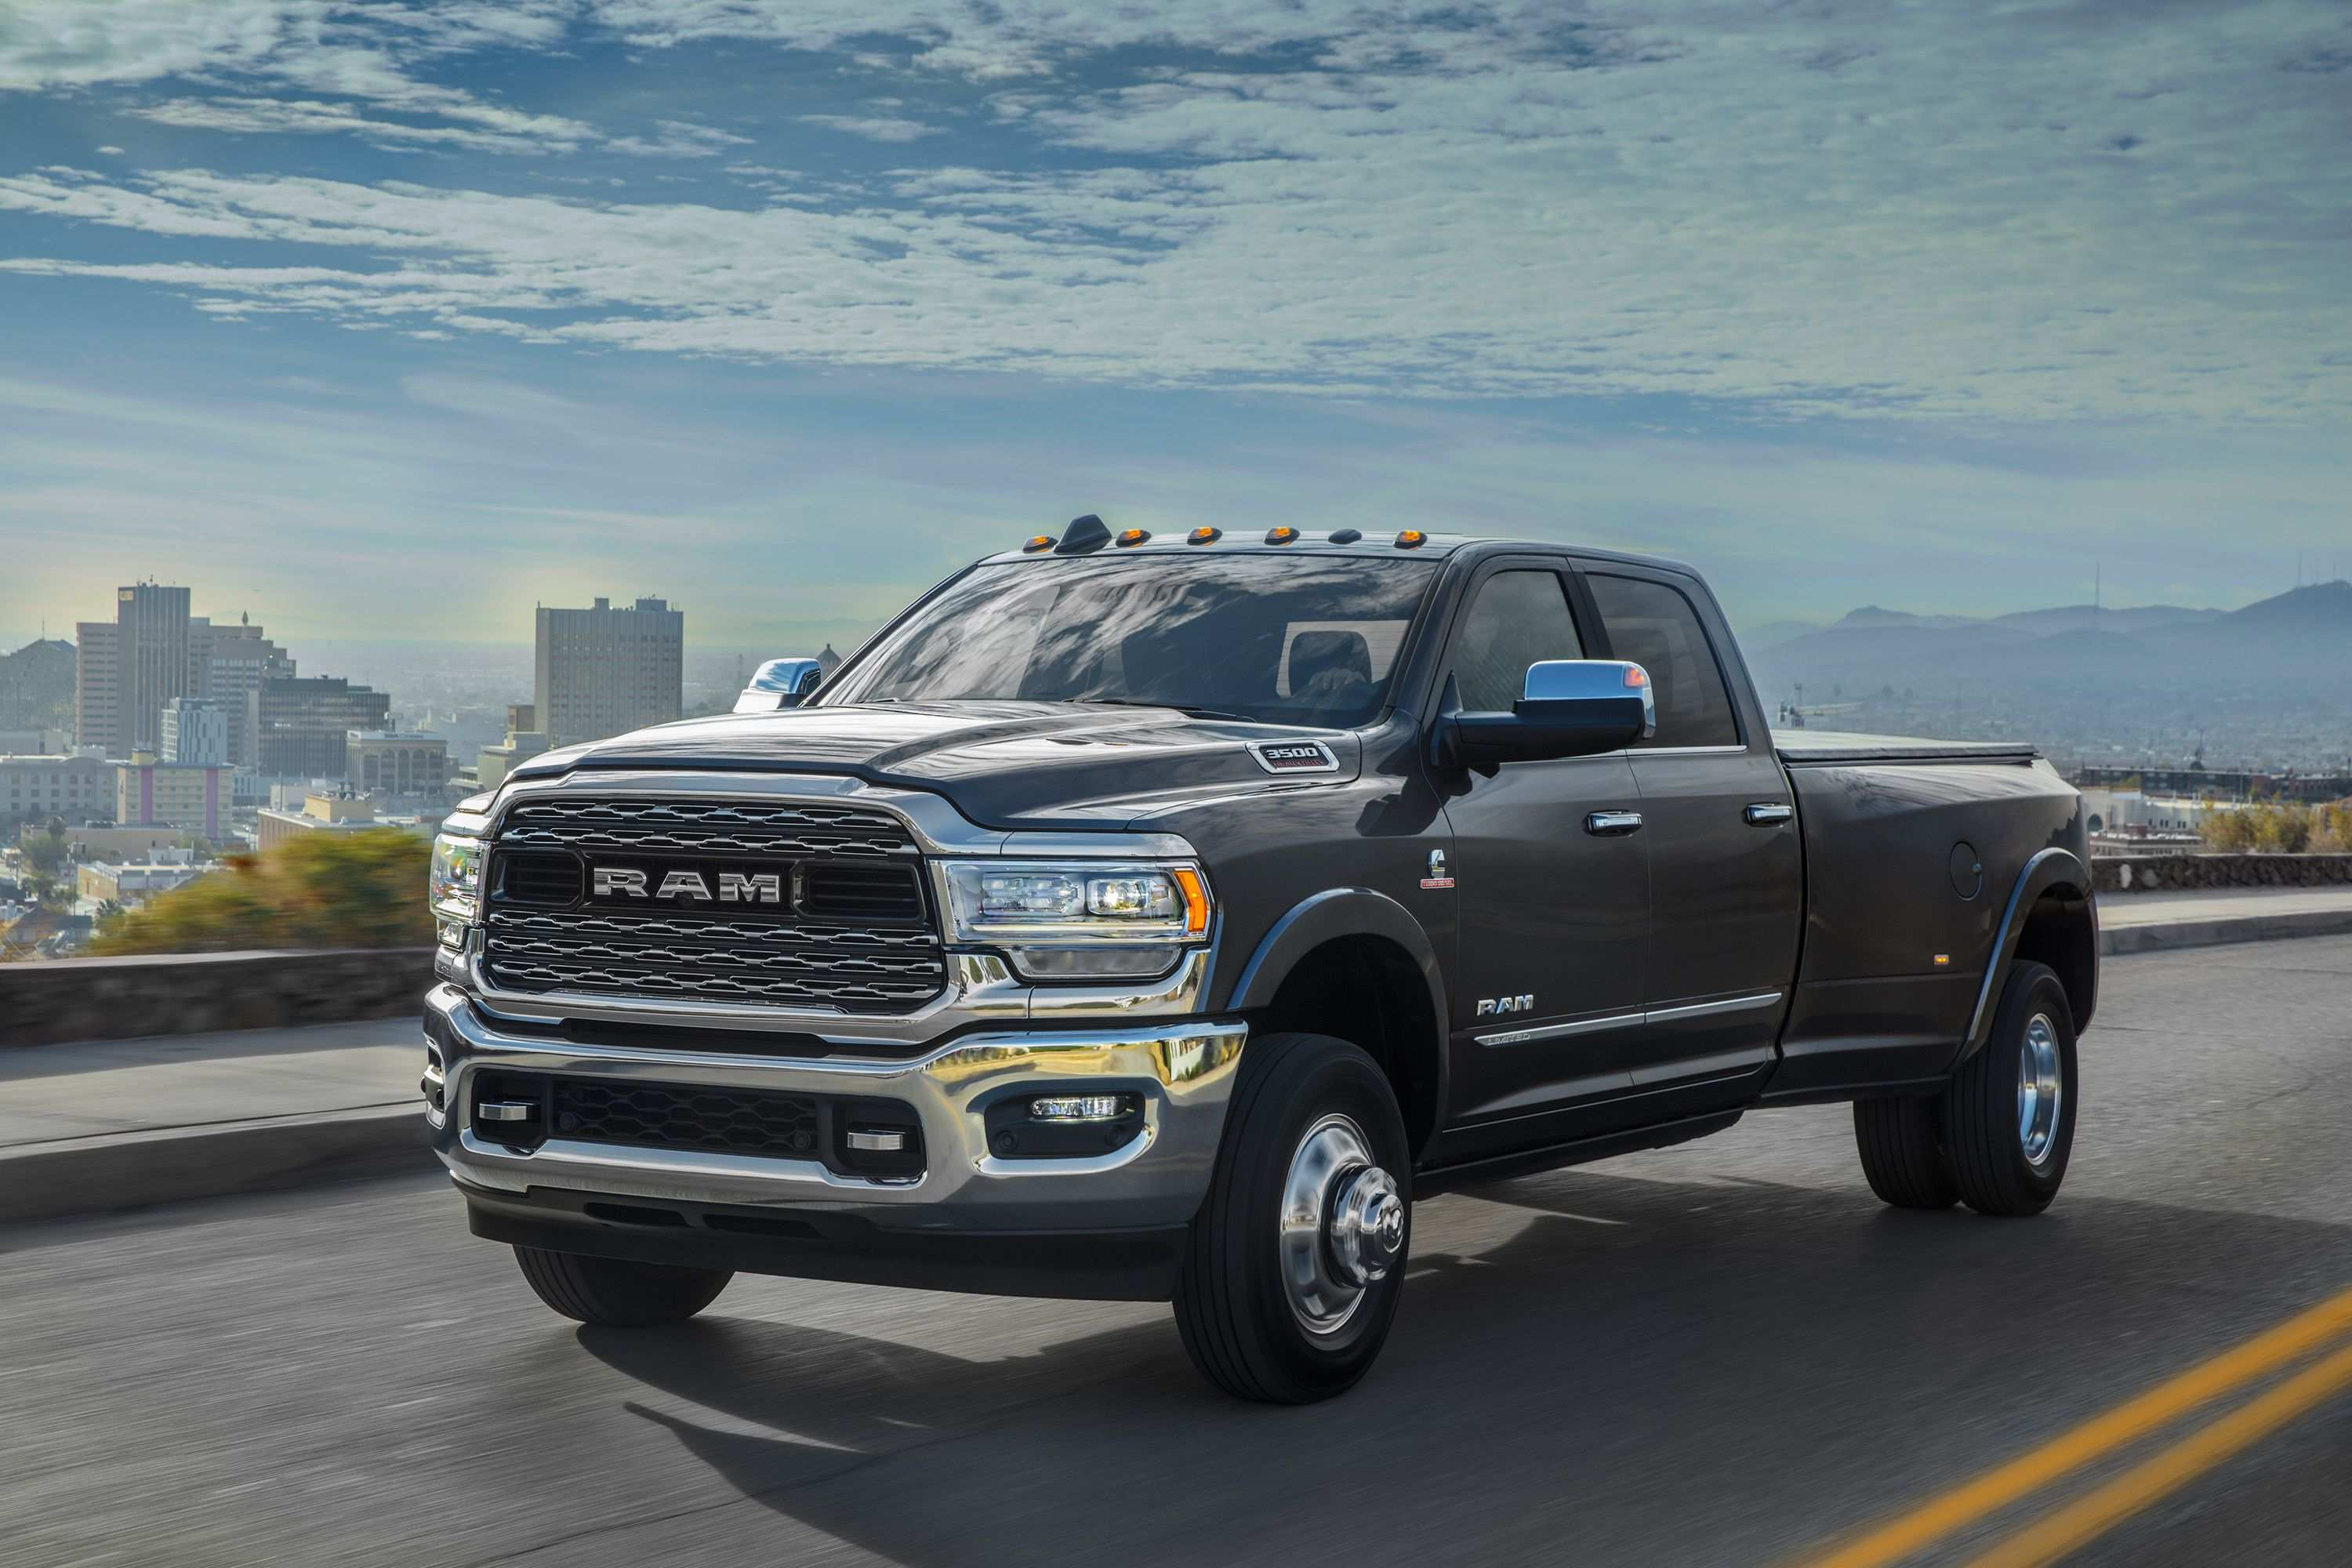 23 Gallery of 2020 Dodge Ram 3500 Mega Cab Picture for 2020 Dodge Ram 3500 Mega Cab